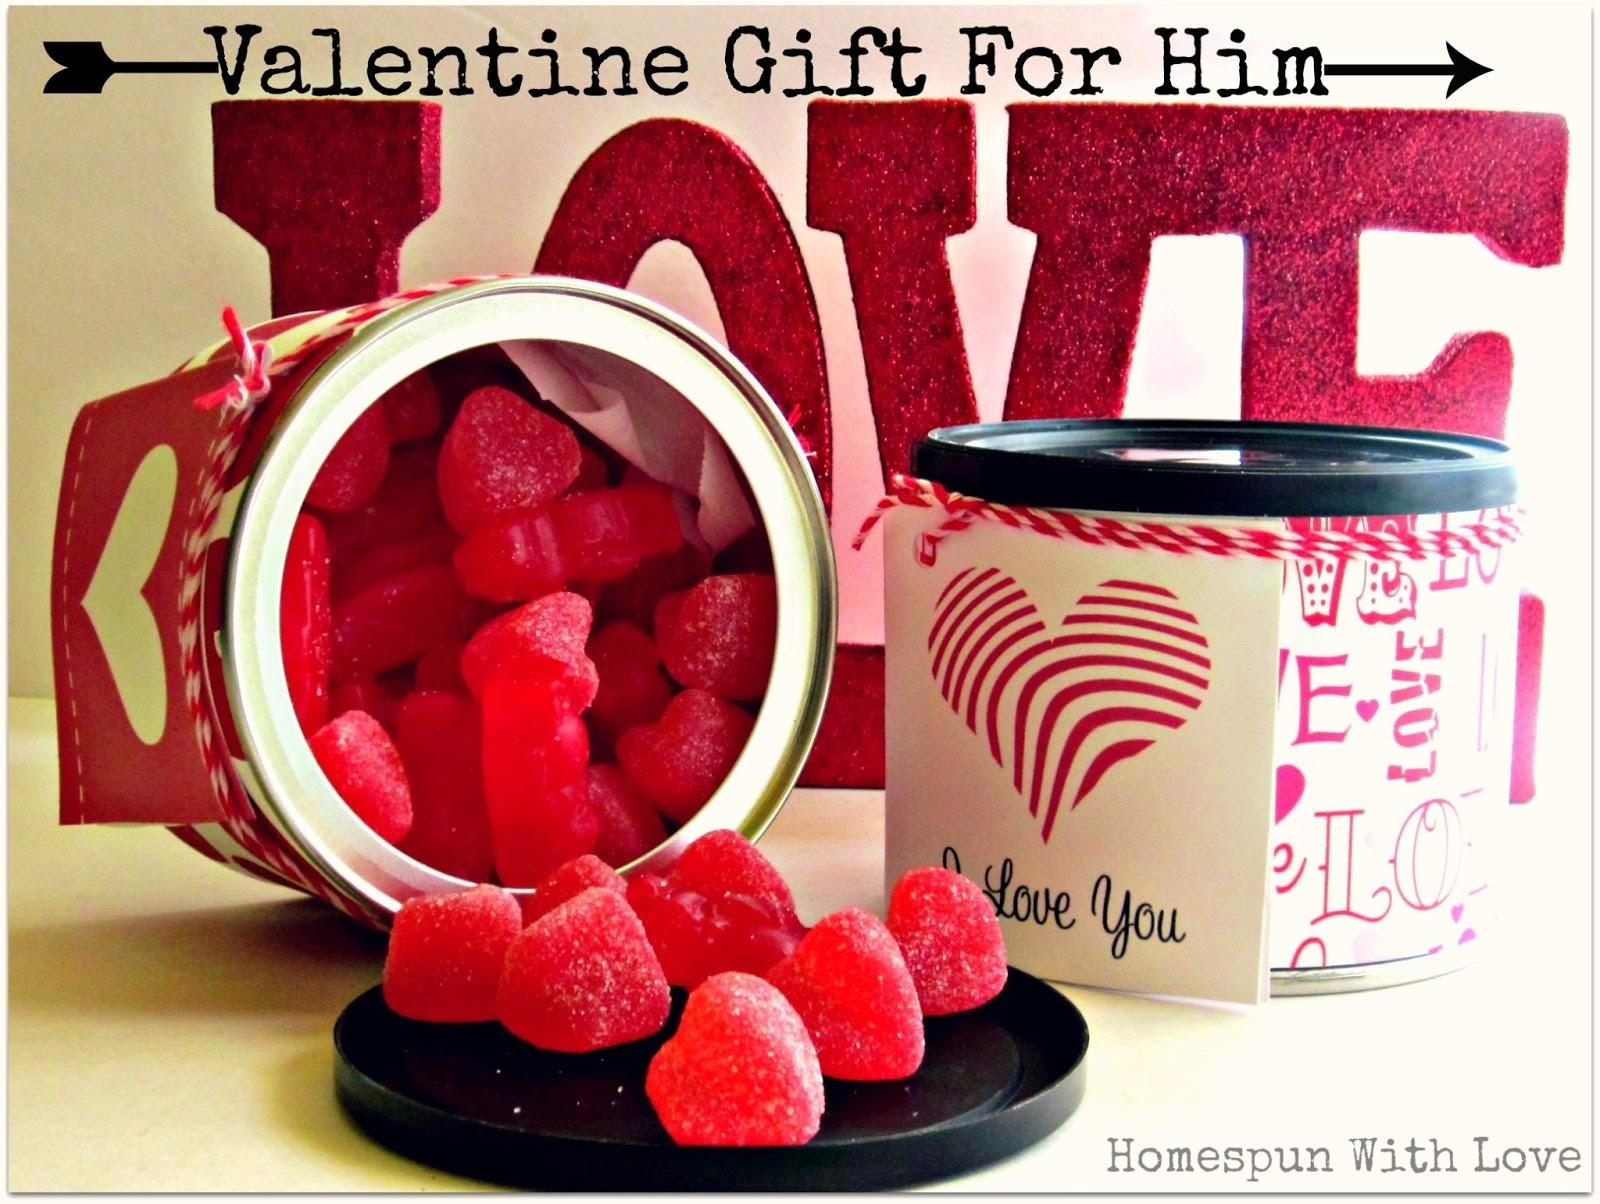 Romantic Valentines Day Gift Ideas Him Ezyshine